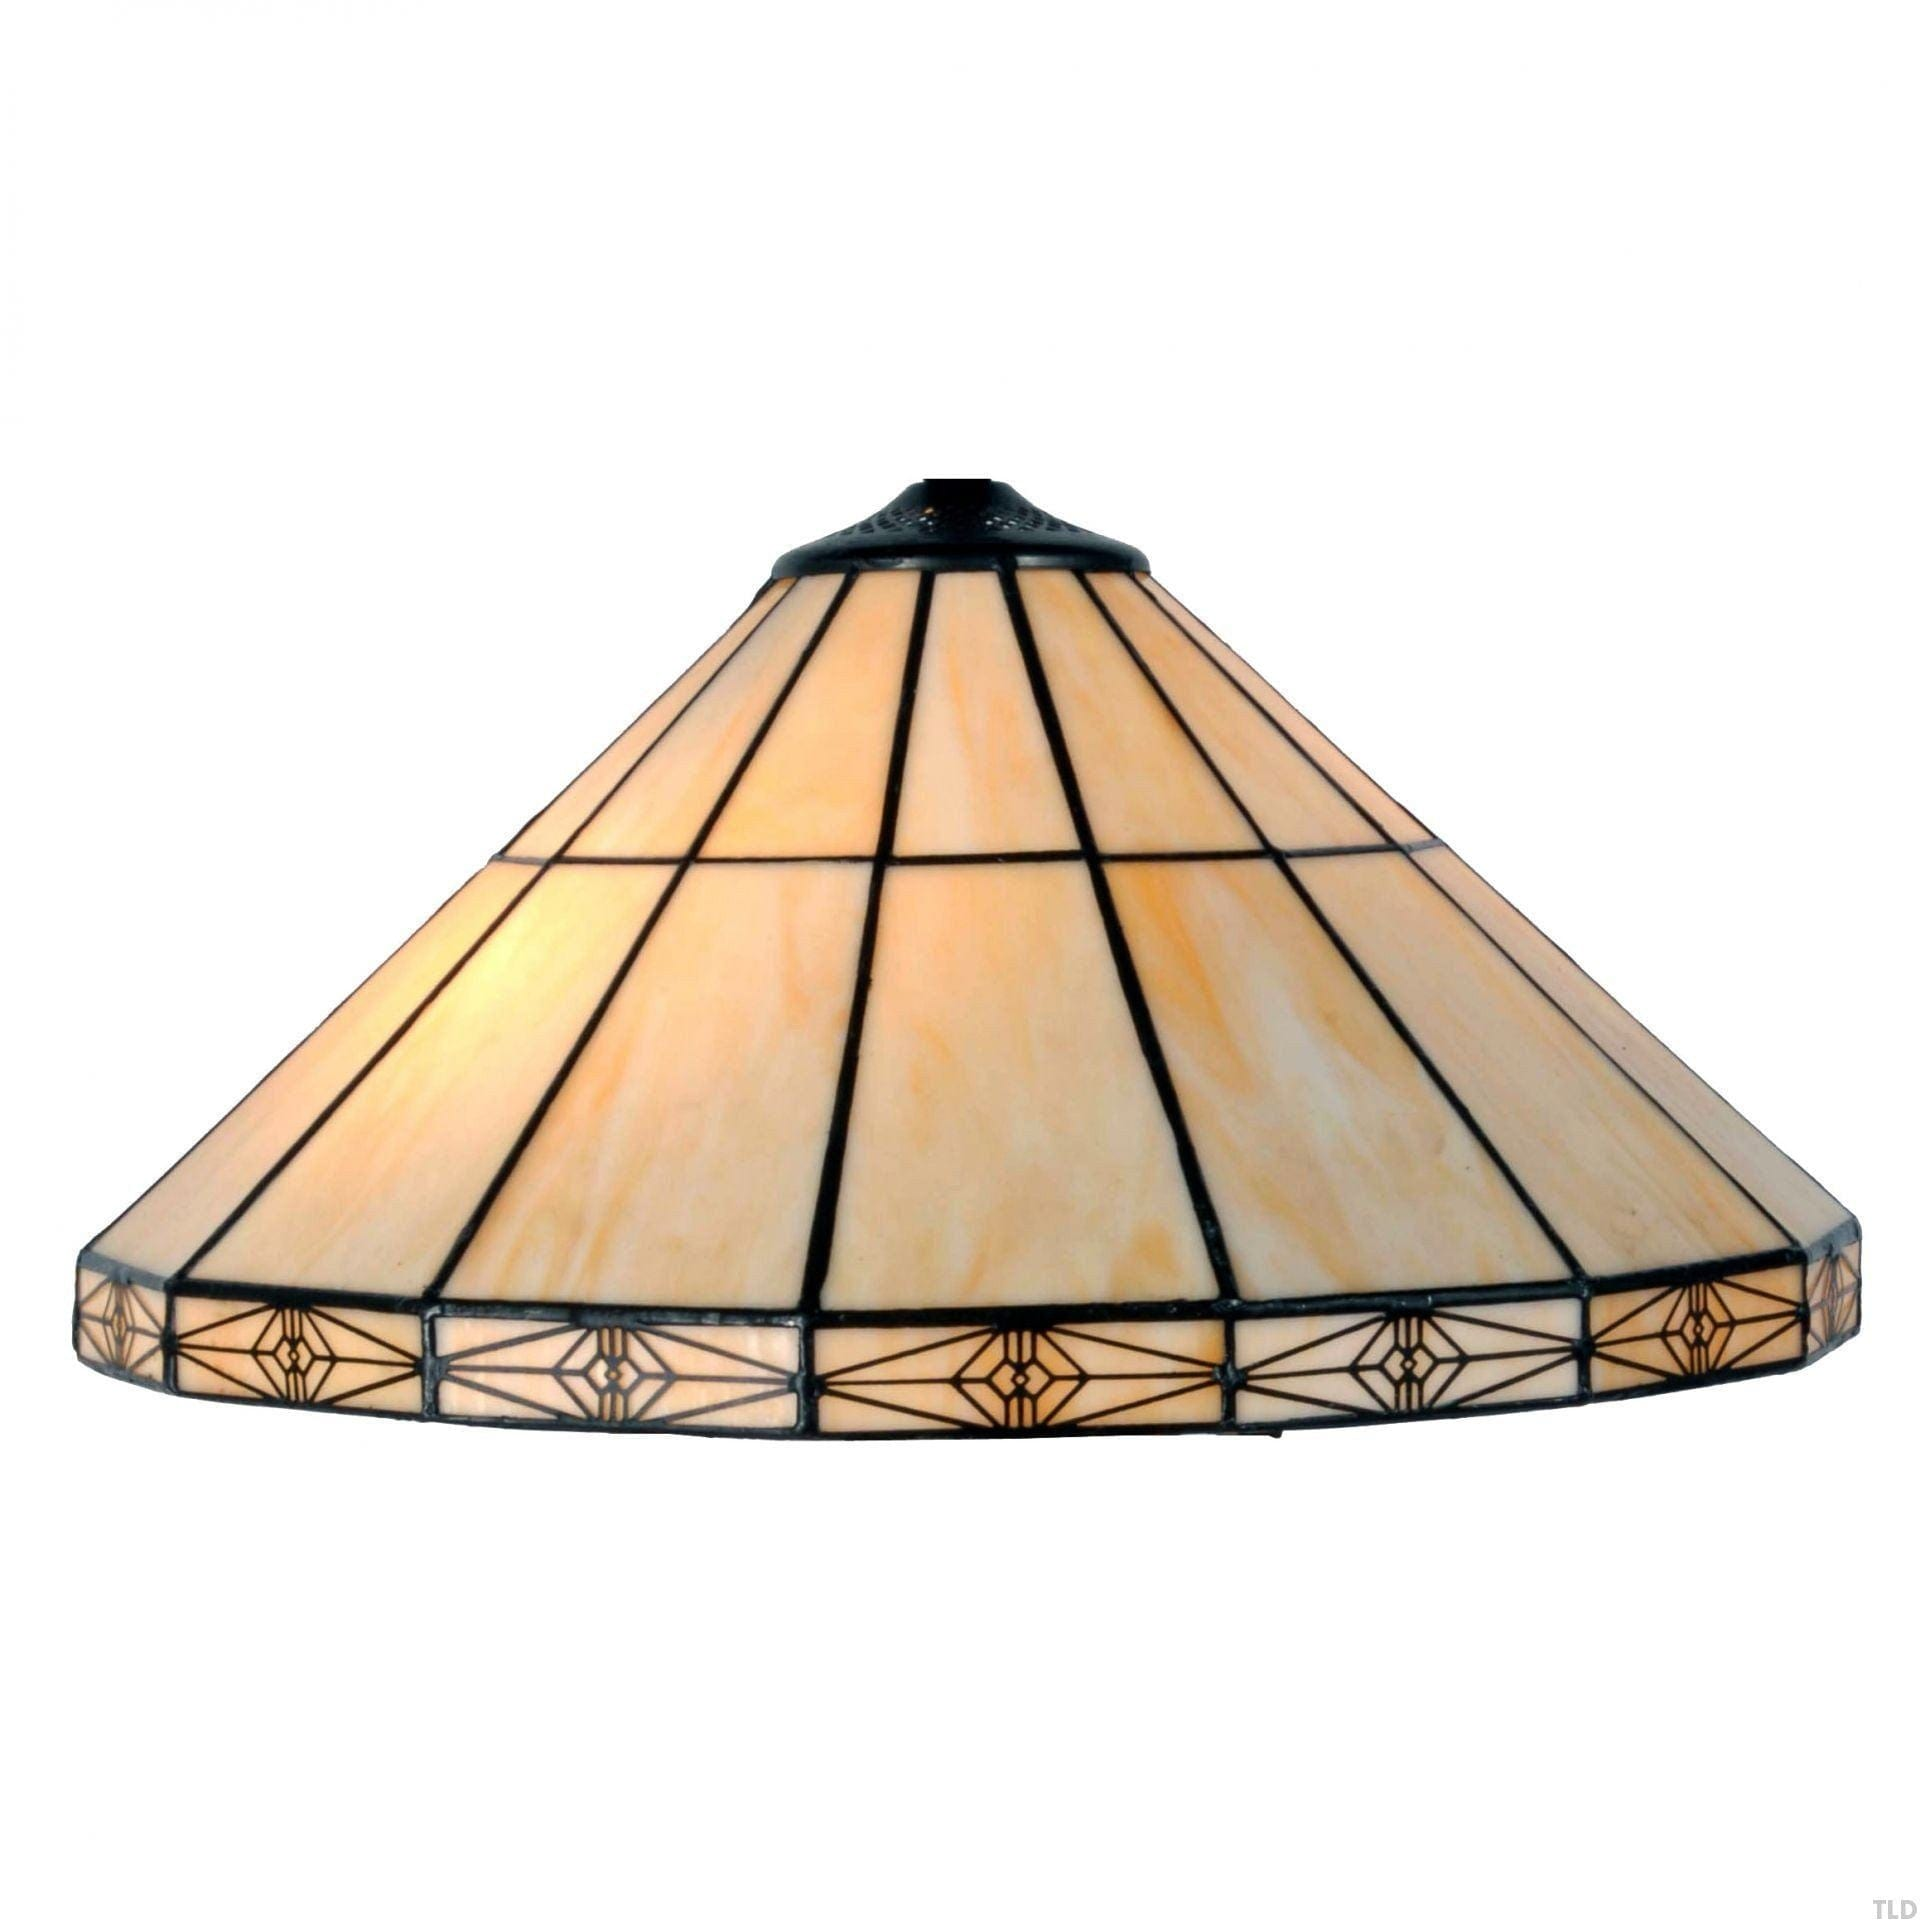 Tiffany Replacement Table Lamp Shades & Bases - Dorchester Large Tiffany Replacement Table Lamp Shade